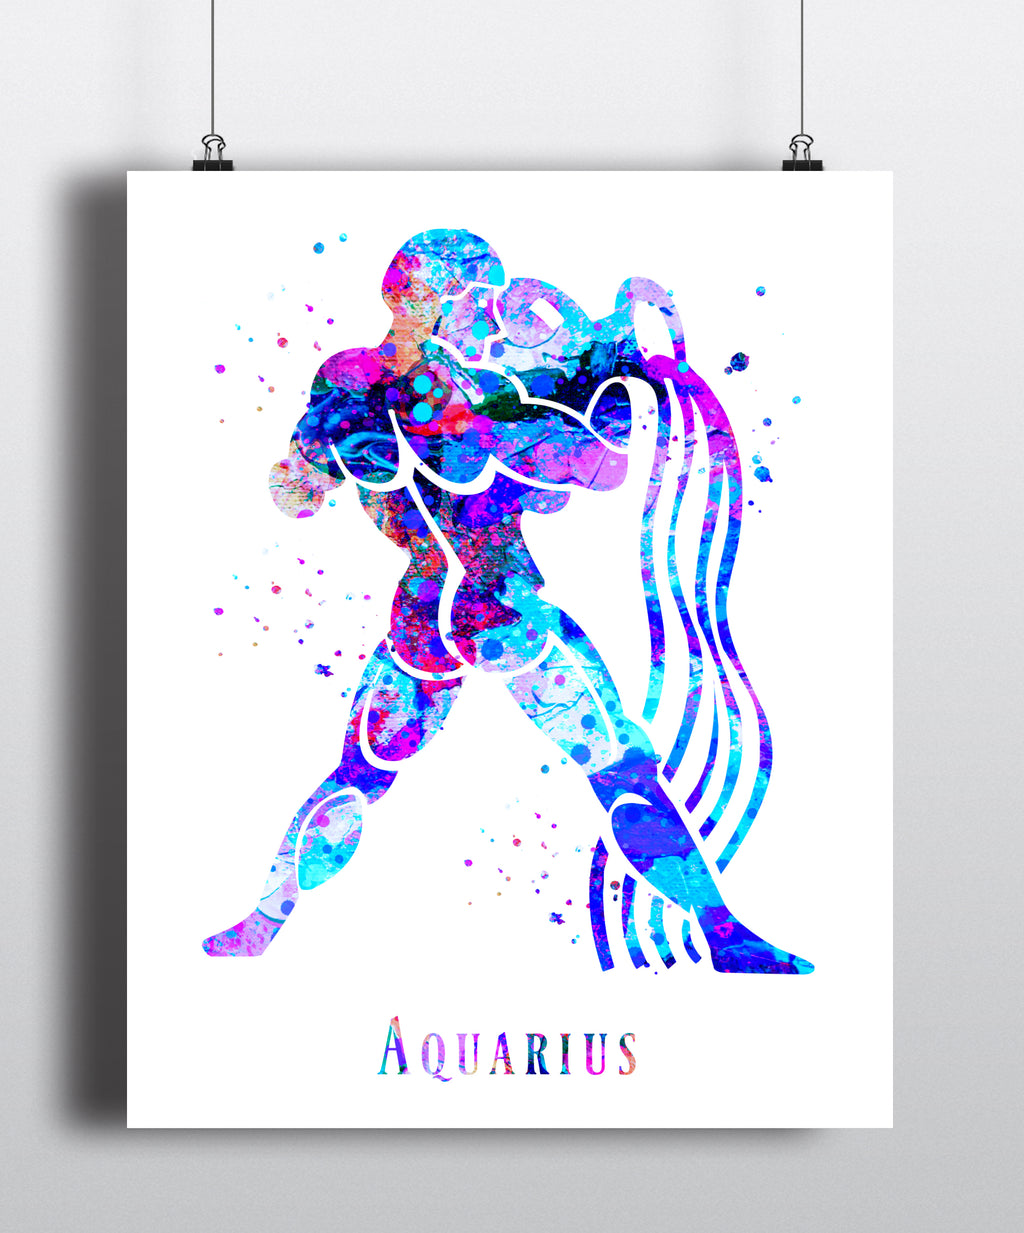 Aquarius Astrology Art Print - Unframed